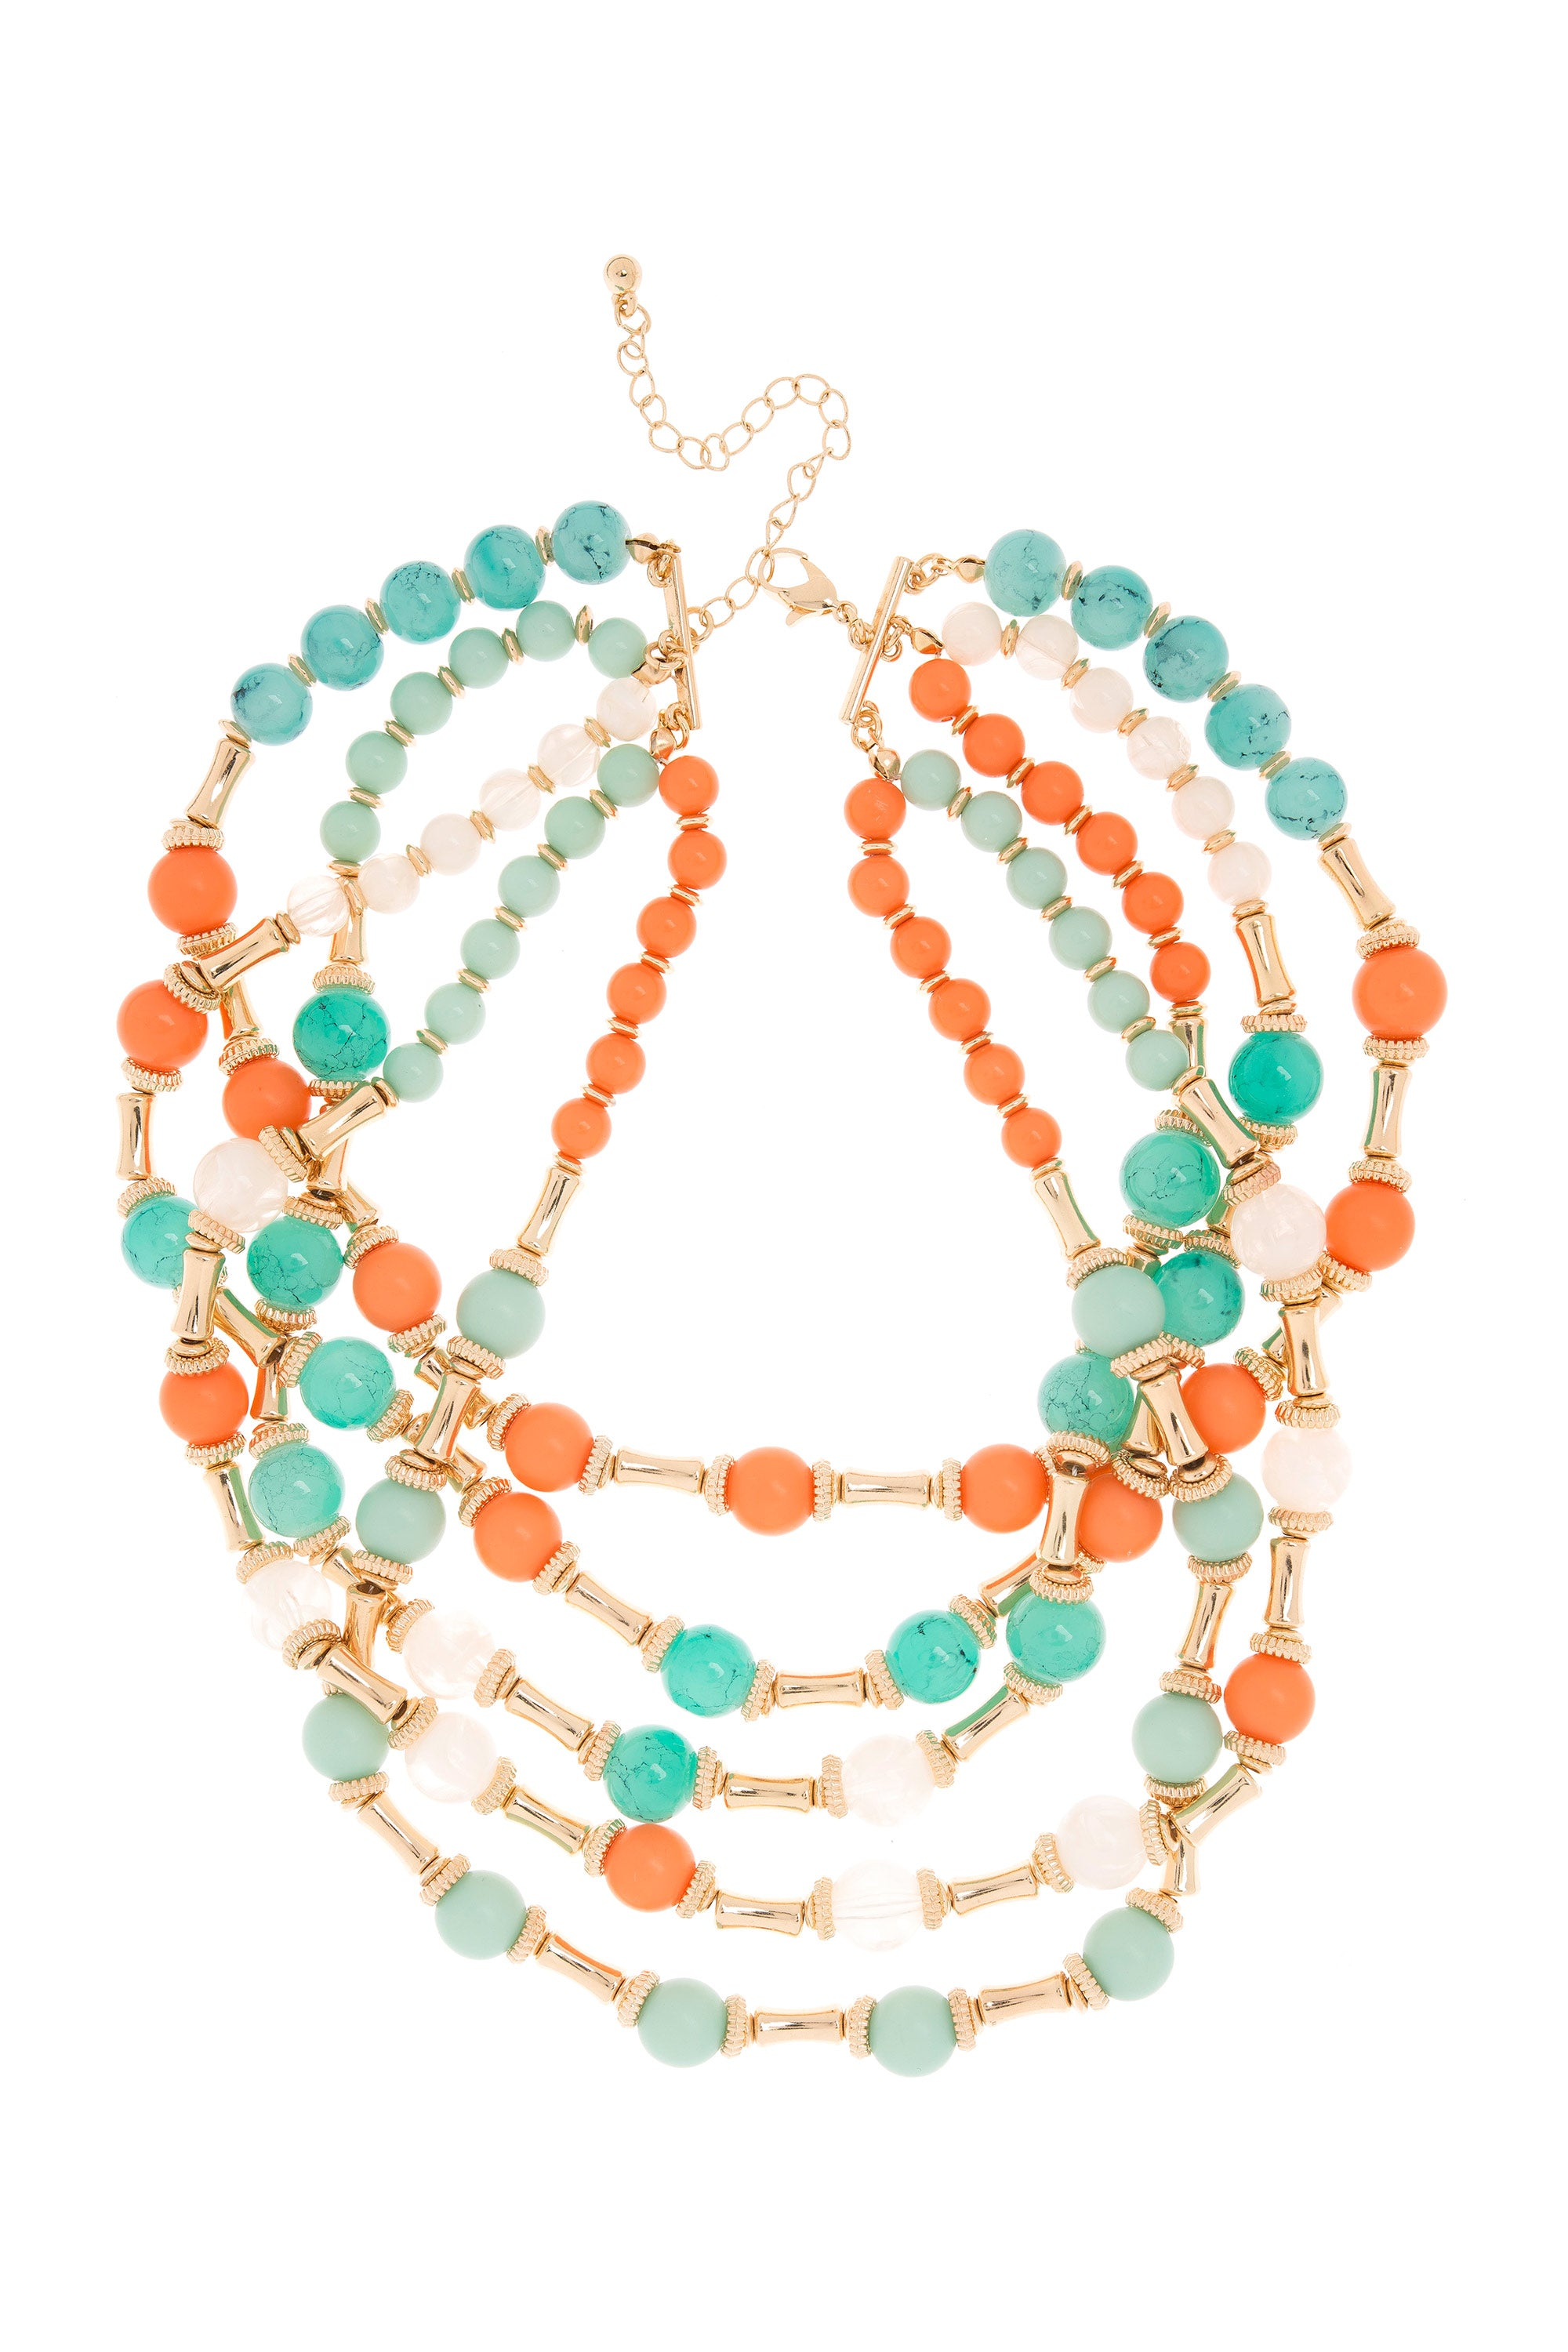 Type 1 Southwest Necklace